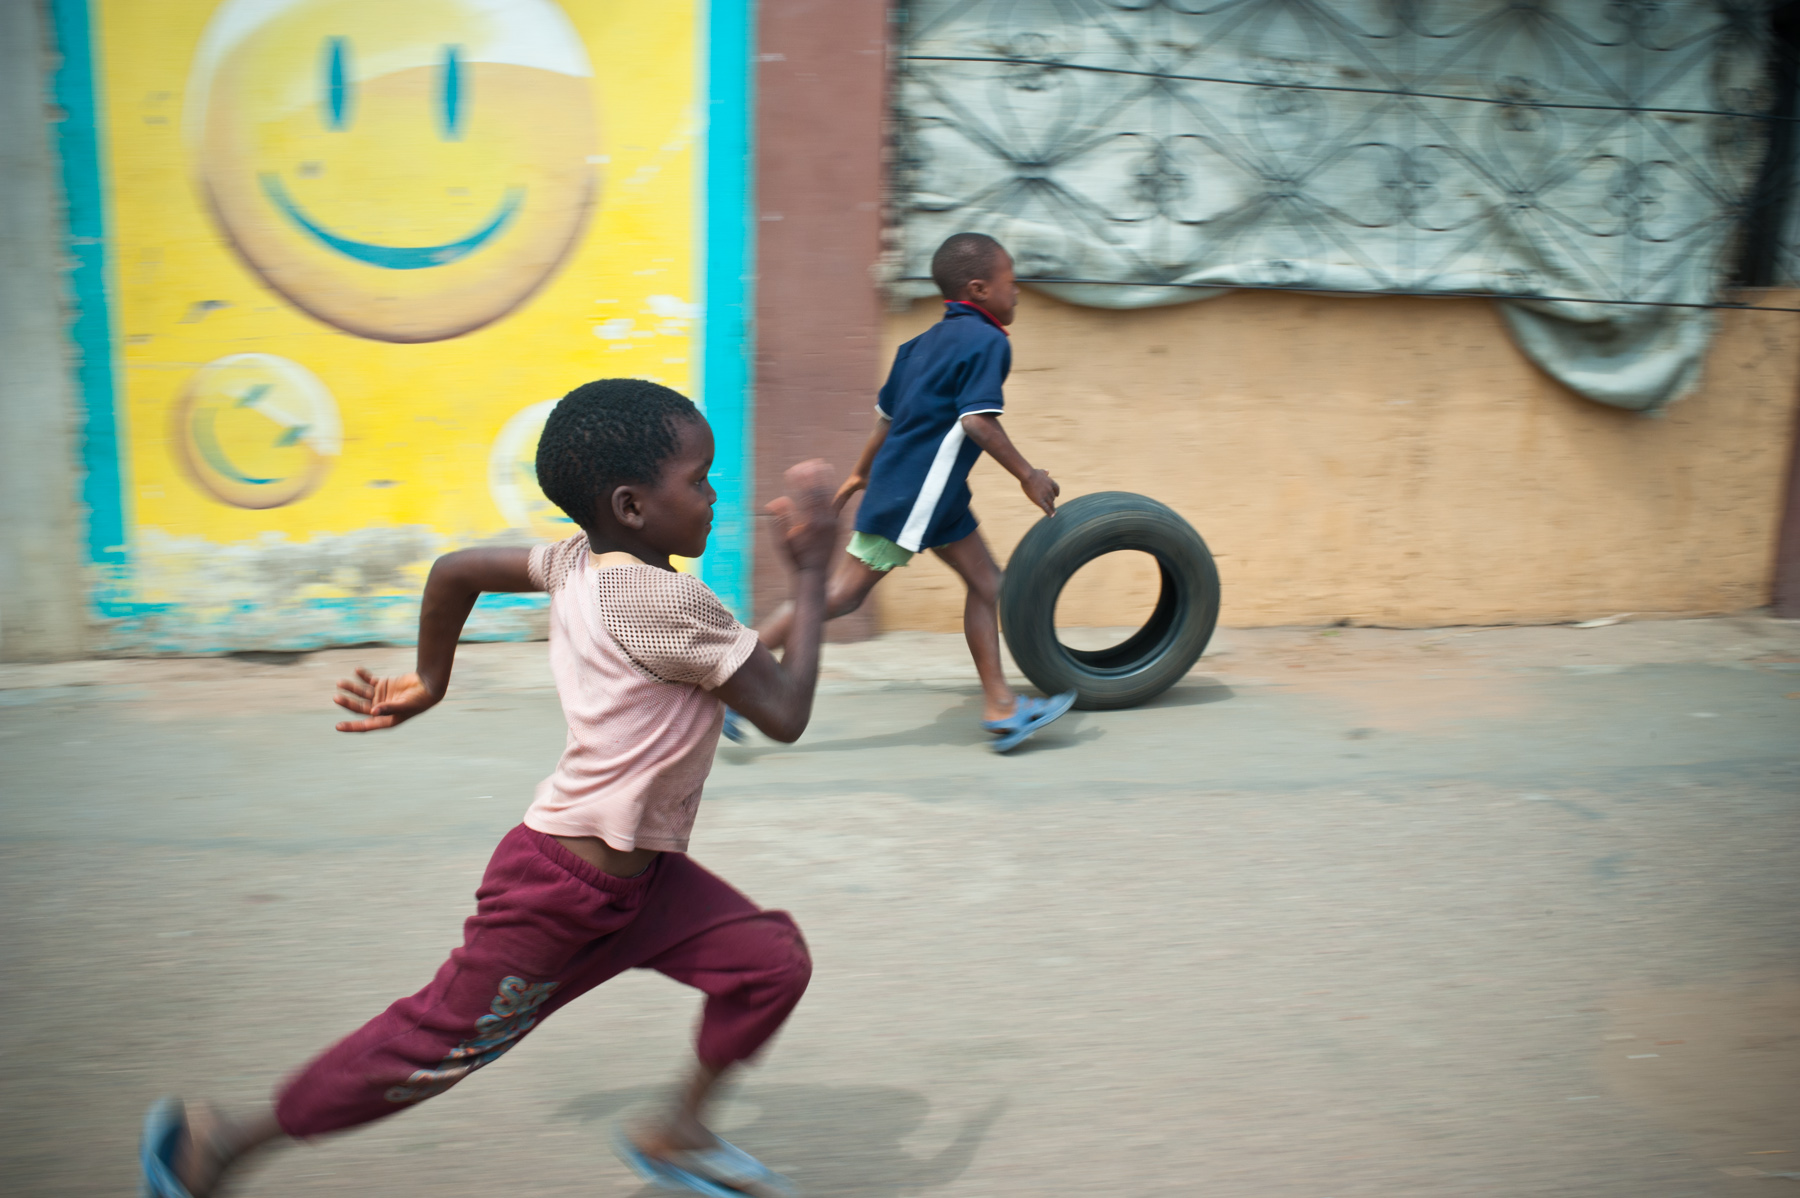 Boys playing - Mozambique